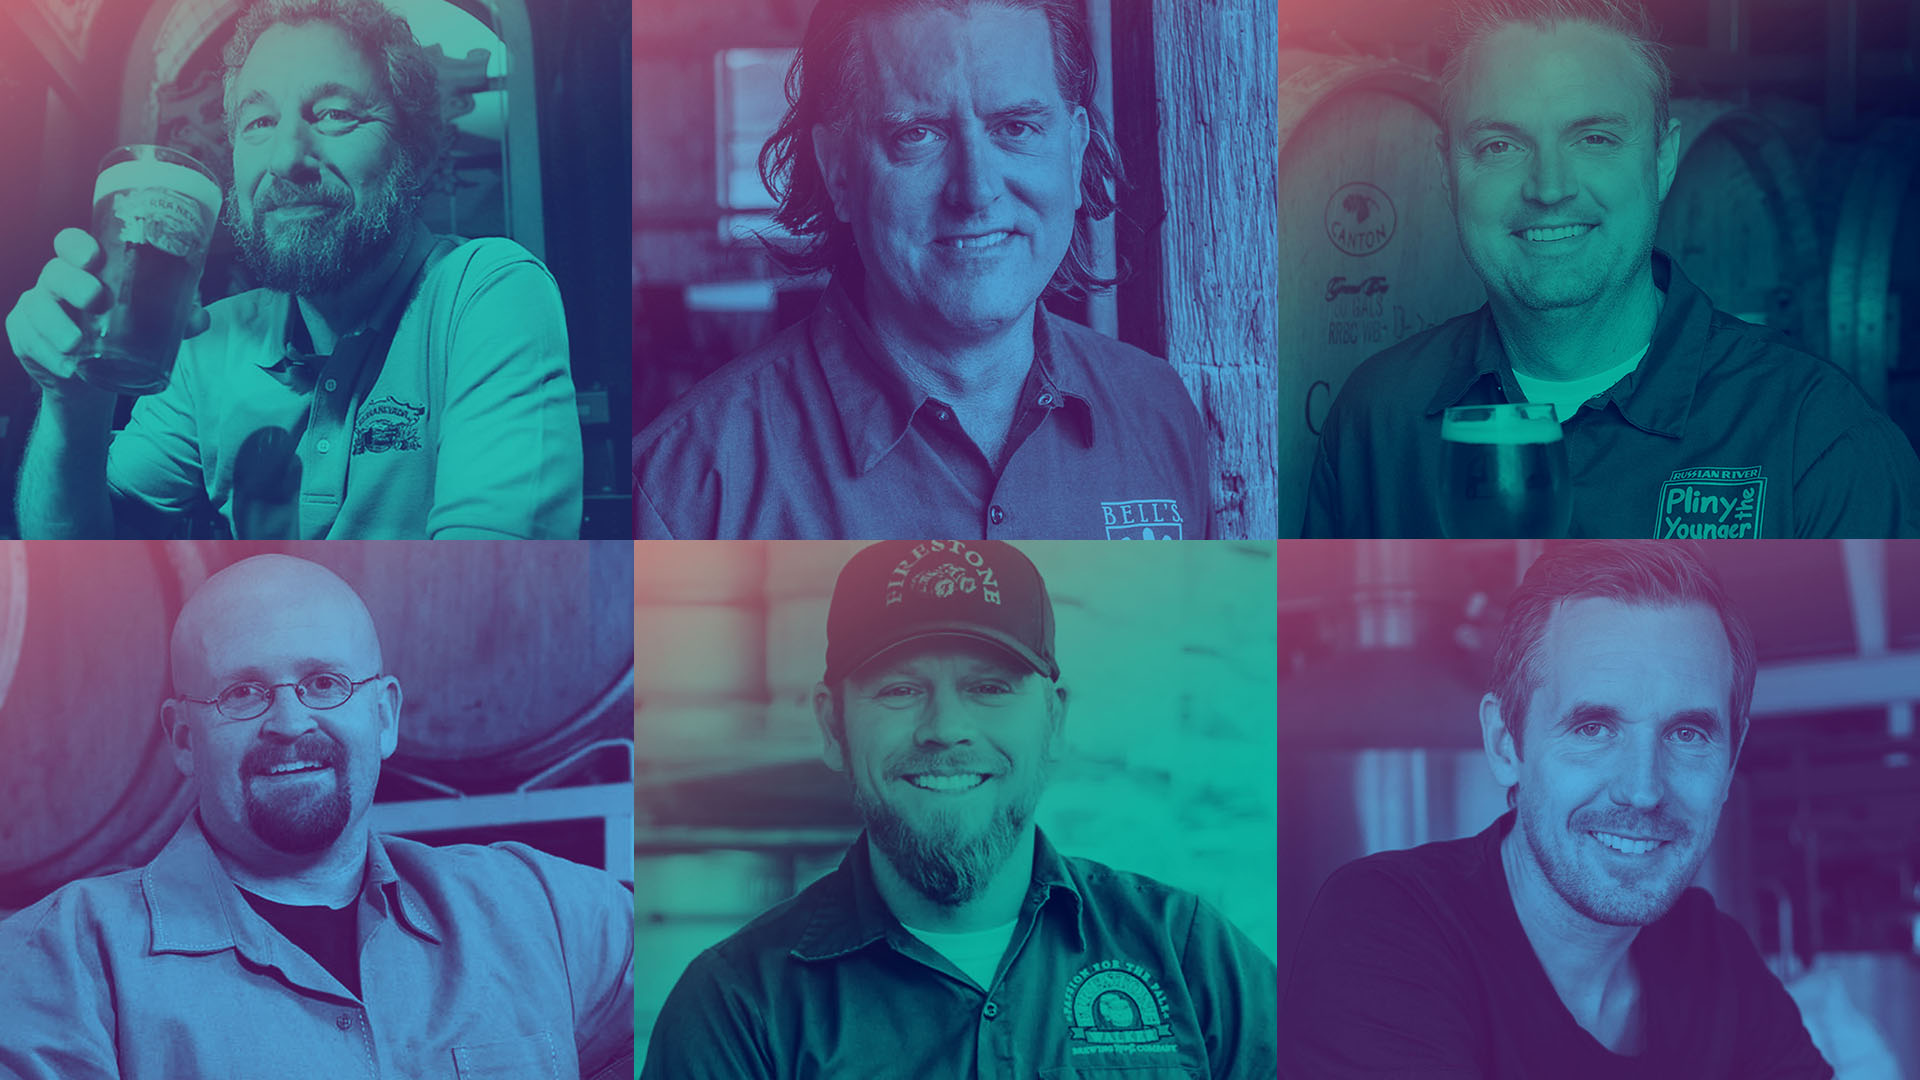 World class speakers - Connect with the heroes of the craft beer movement in the secluded location in the Arctic for 2 whole days of interesting talks and workshops.